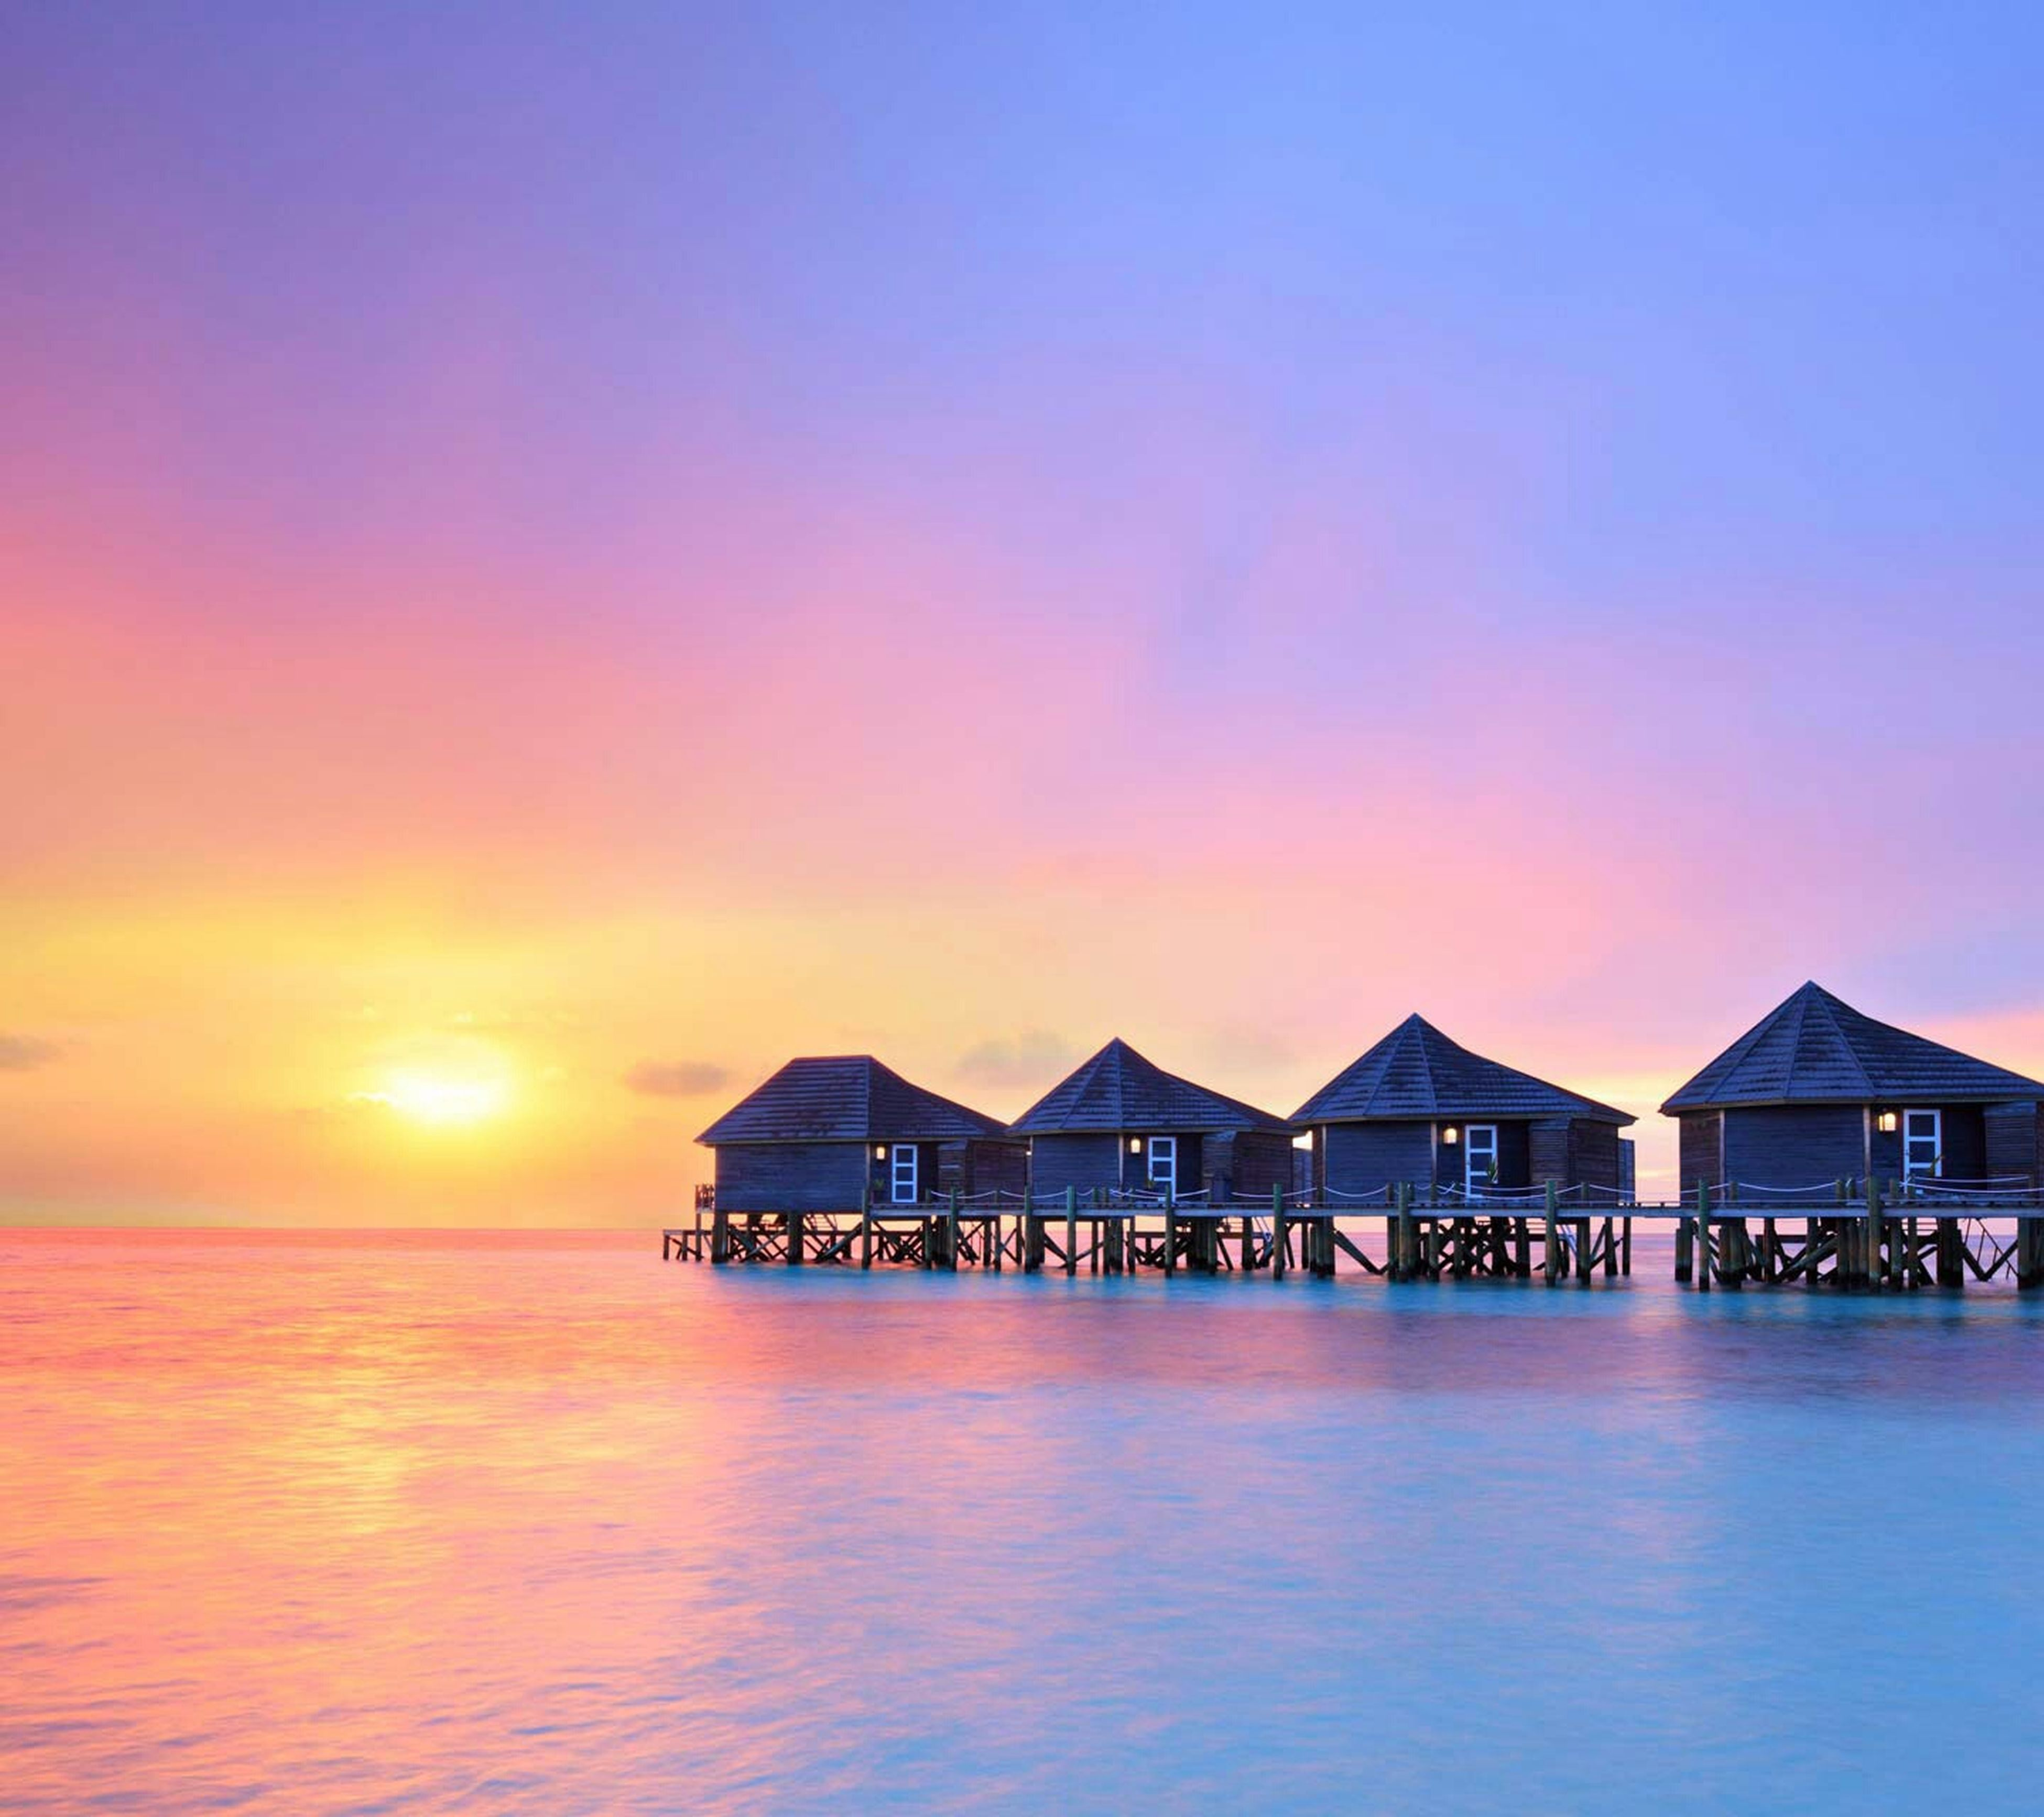 water, sunset, sea, waterfront, built structure, architecture, copy space, building exterior, clear sky, scenics, orange color, tranquility, tranquil scene, beauty in nature, horizon over water, sky, reflection, nature, idyllic, sun